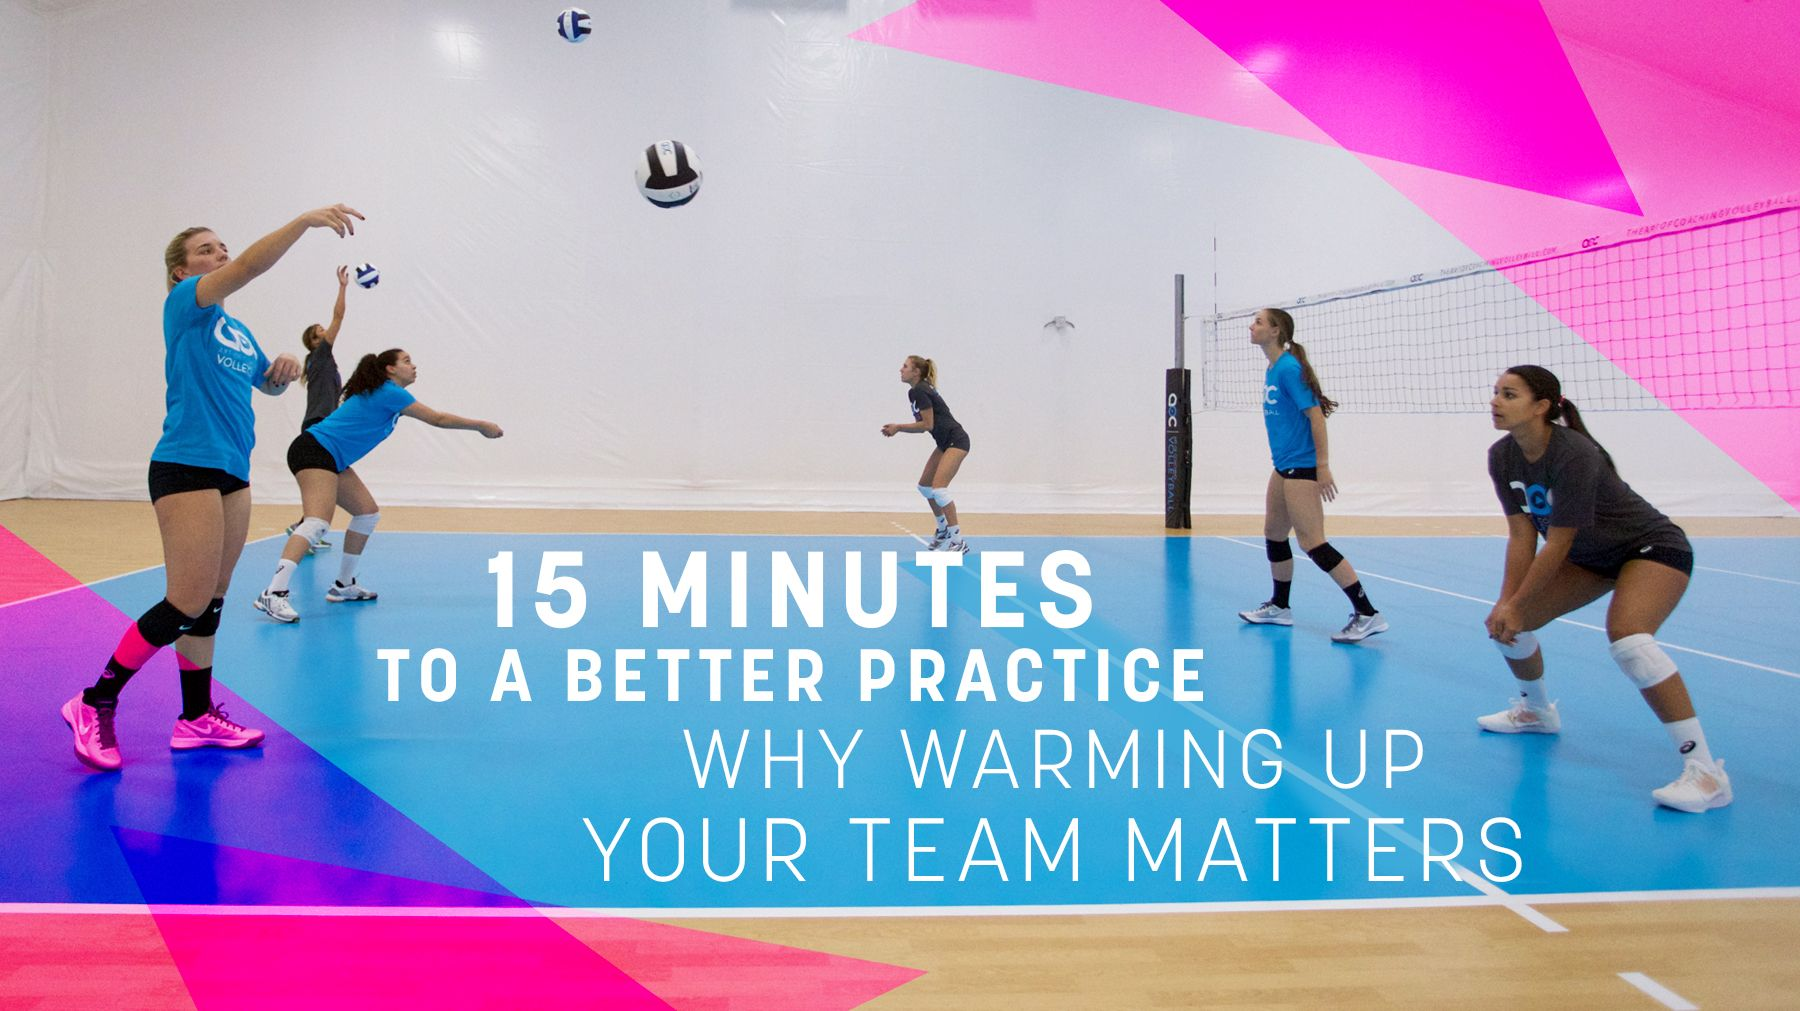 15 Minutes To A Better Practice Why Warming Up Your Team Matters The Art Of Coaching Volleyball Coaching Volleyball Volleyball Warm Ups Volleyball Practice